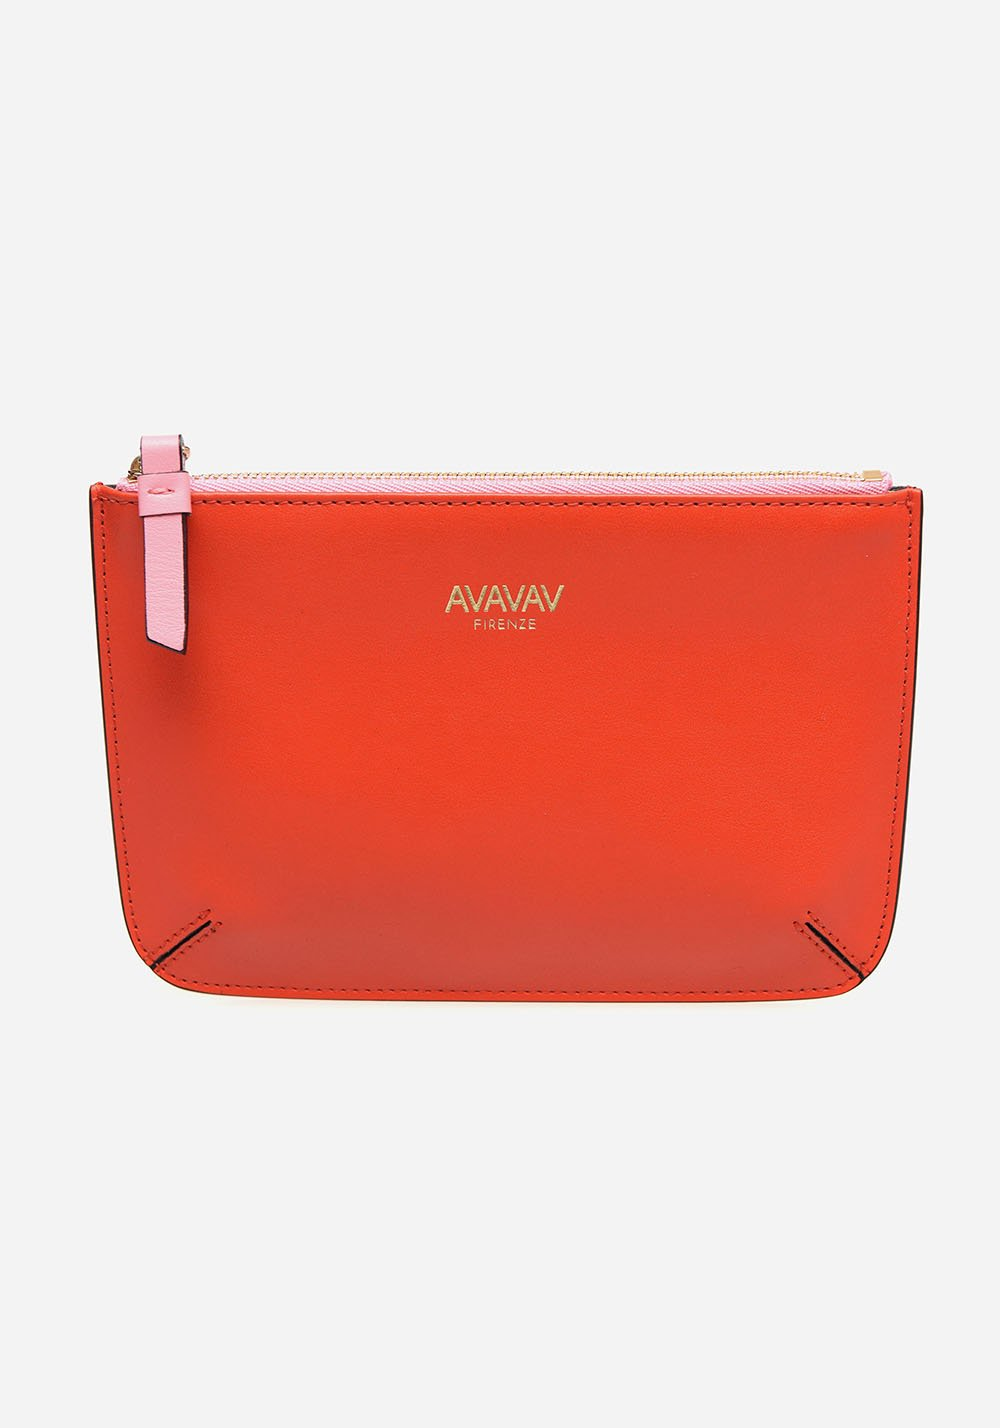 Small Pouch in Bright Red - AVAVAV-Firenze